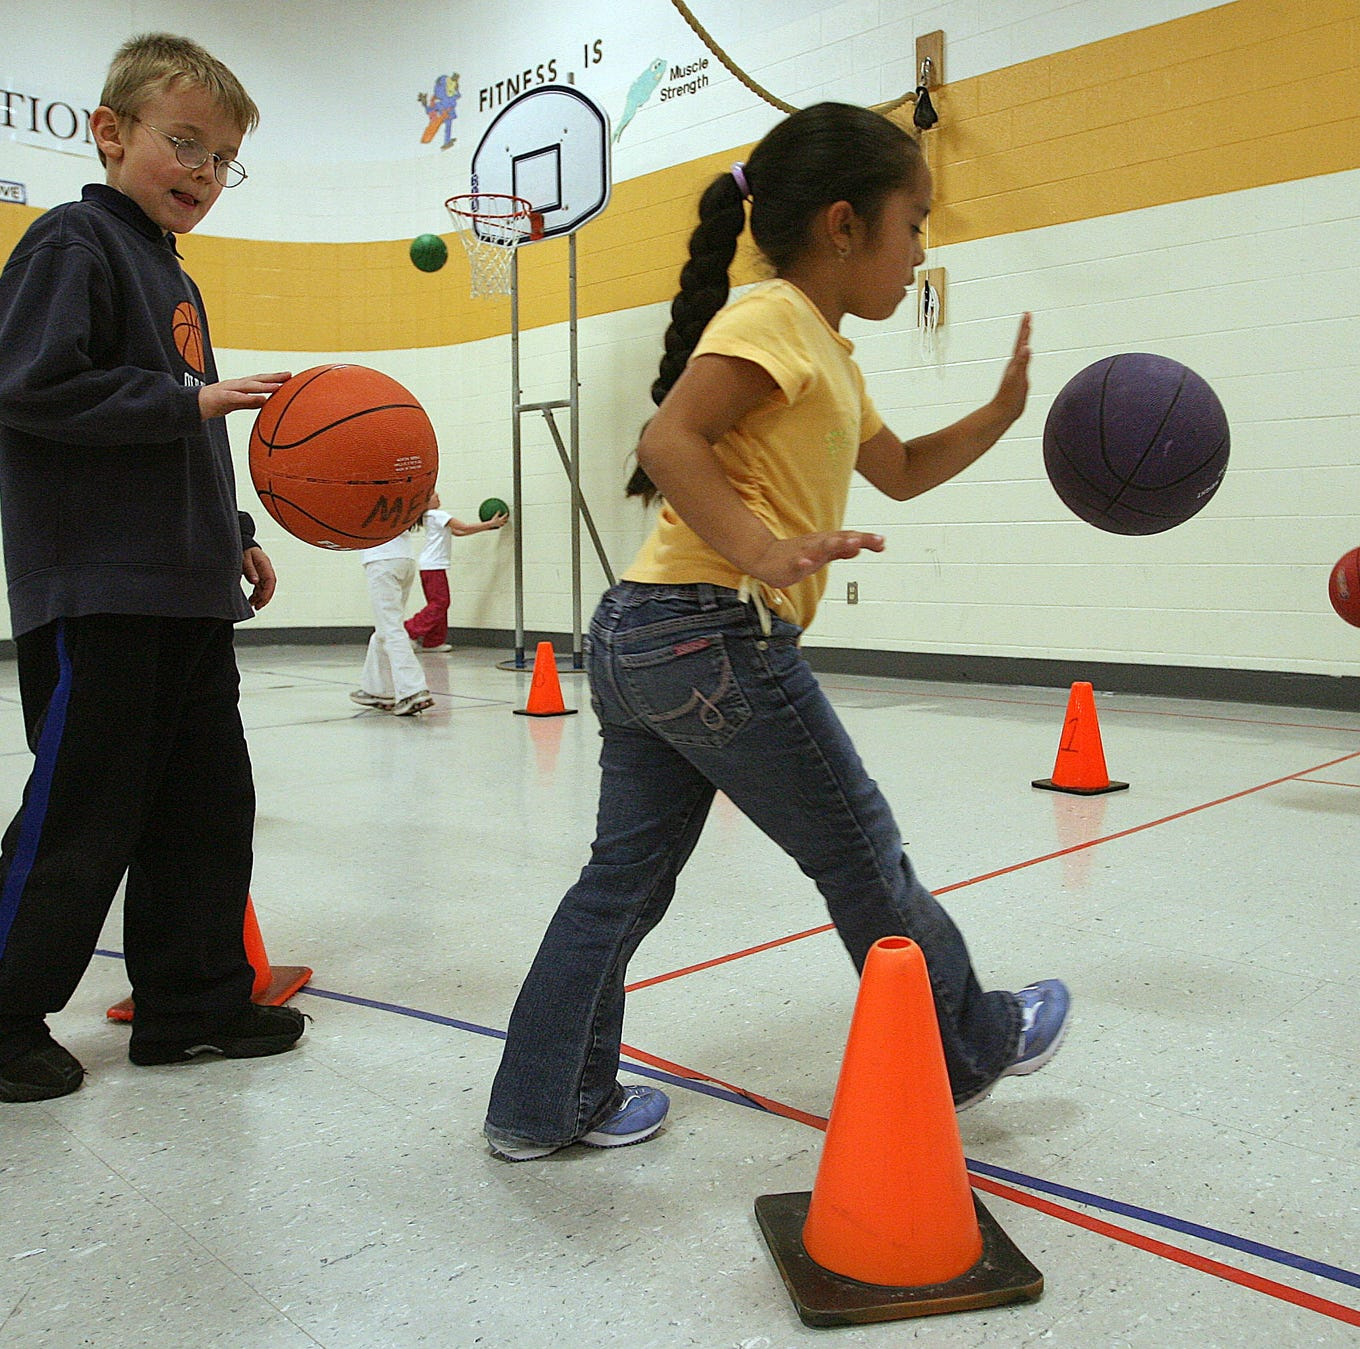 Physical education is key to longer, happier lives. Our kids and schools need more of it.